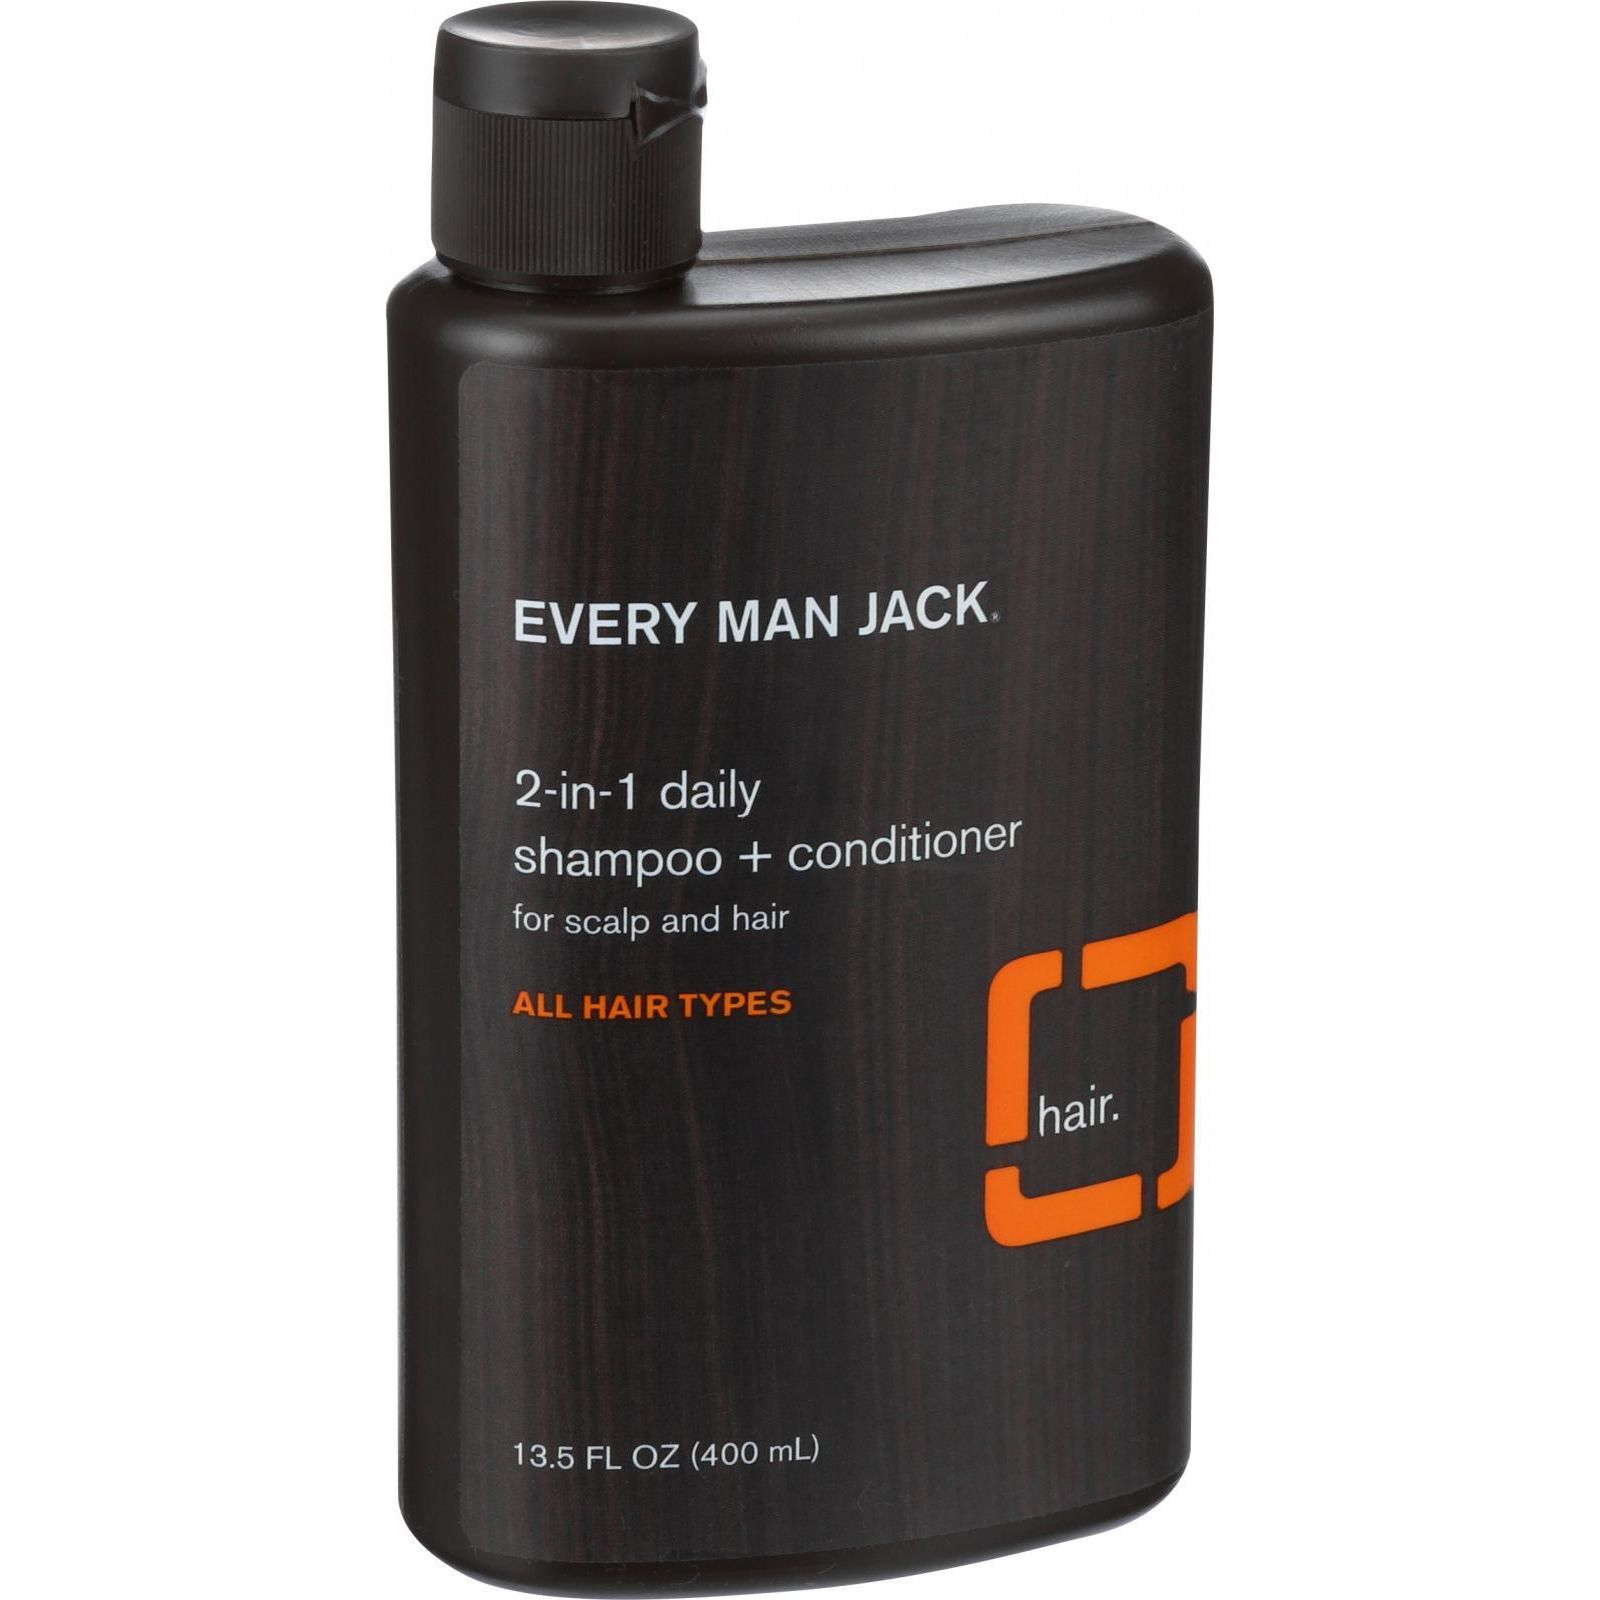 Every Man Jack 2 in 1 Shampoo plus Conditioner  Daily  Scalp and Hair  All Hair Types  13.5 oz